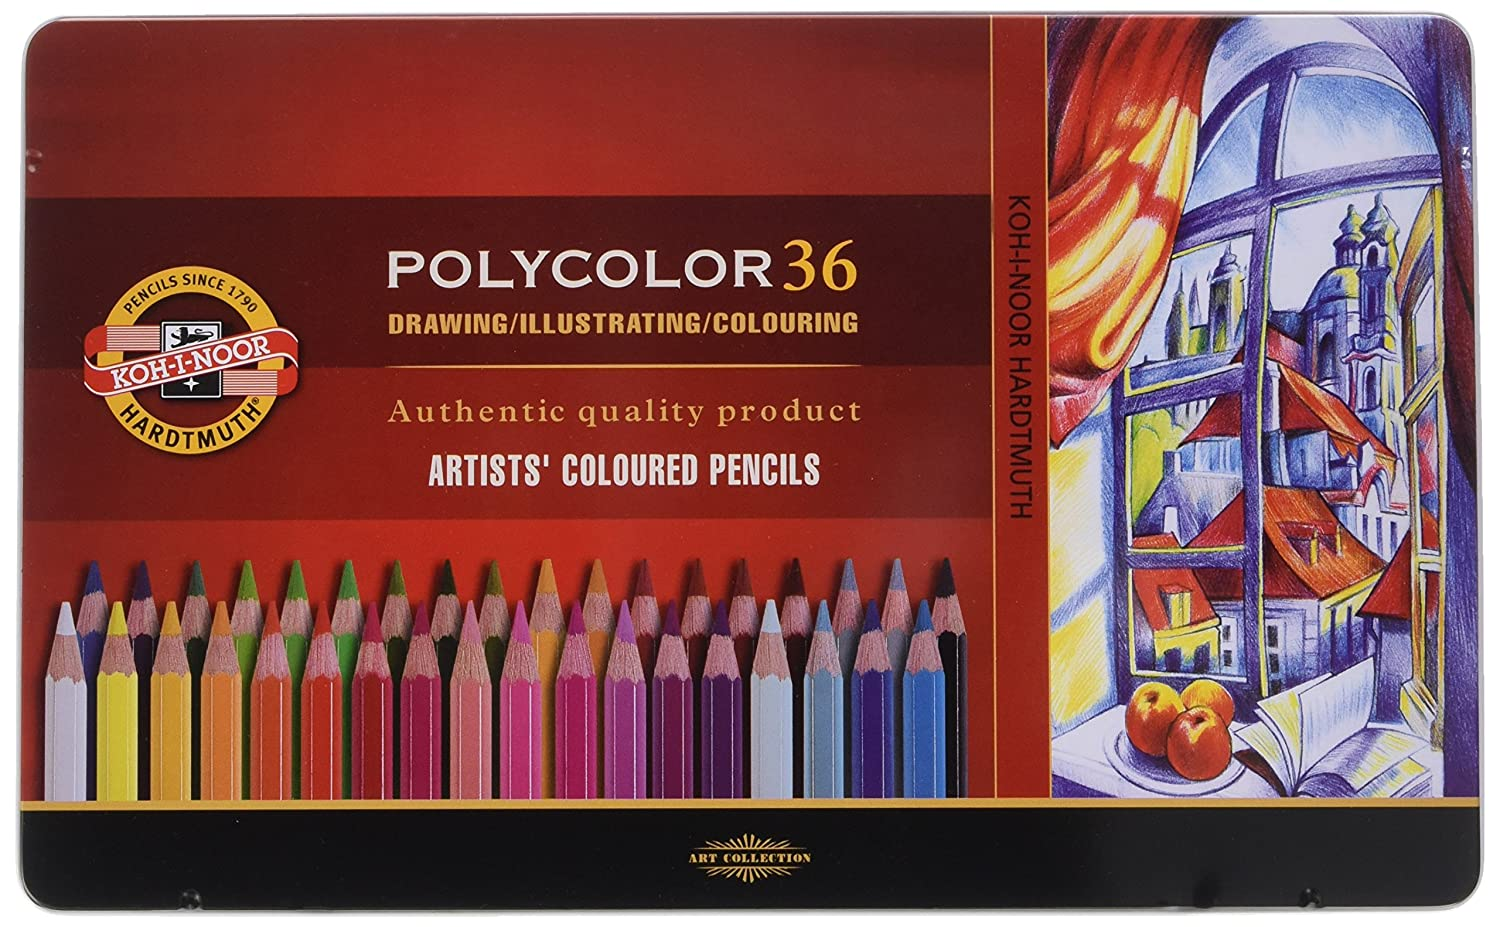 Koh I Noor 3825 Polycolor Artist's Coloured Pencils   Assorted Colour (Set Of 36) by Koh I Noor